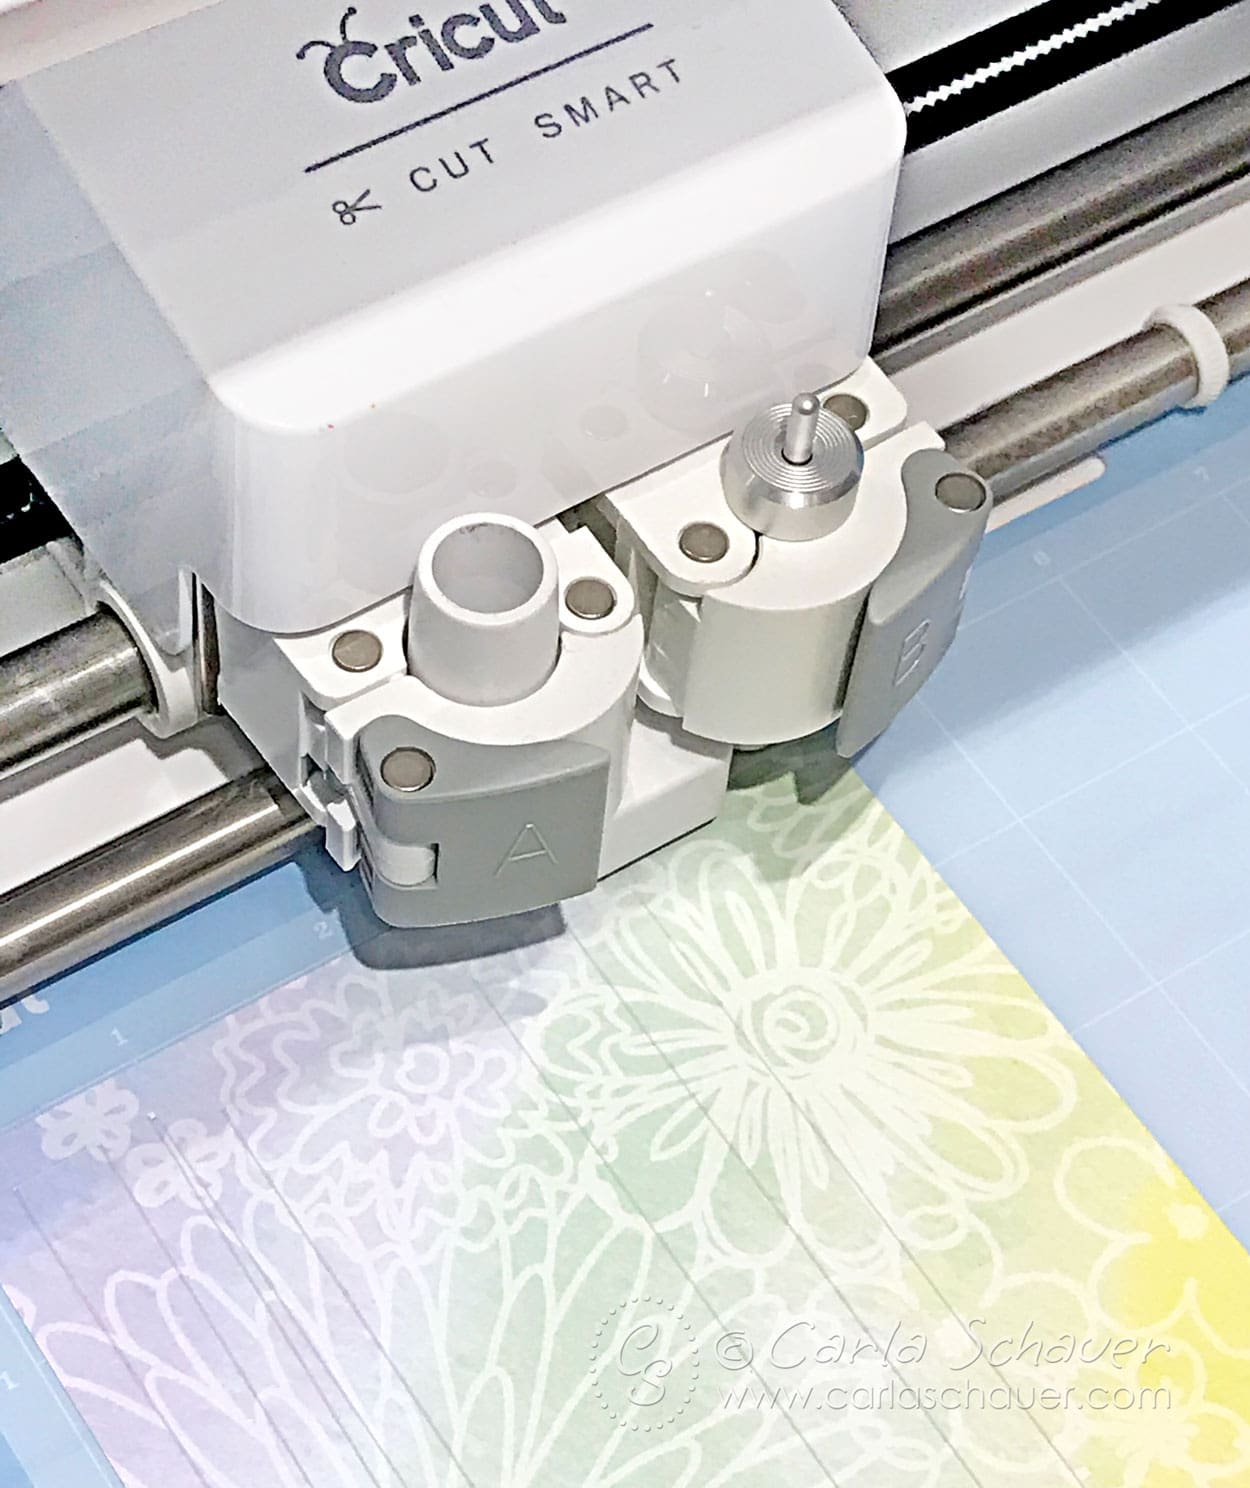 Cricut machine cutting paper beads.